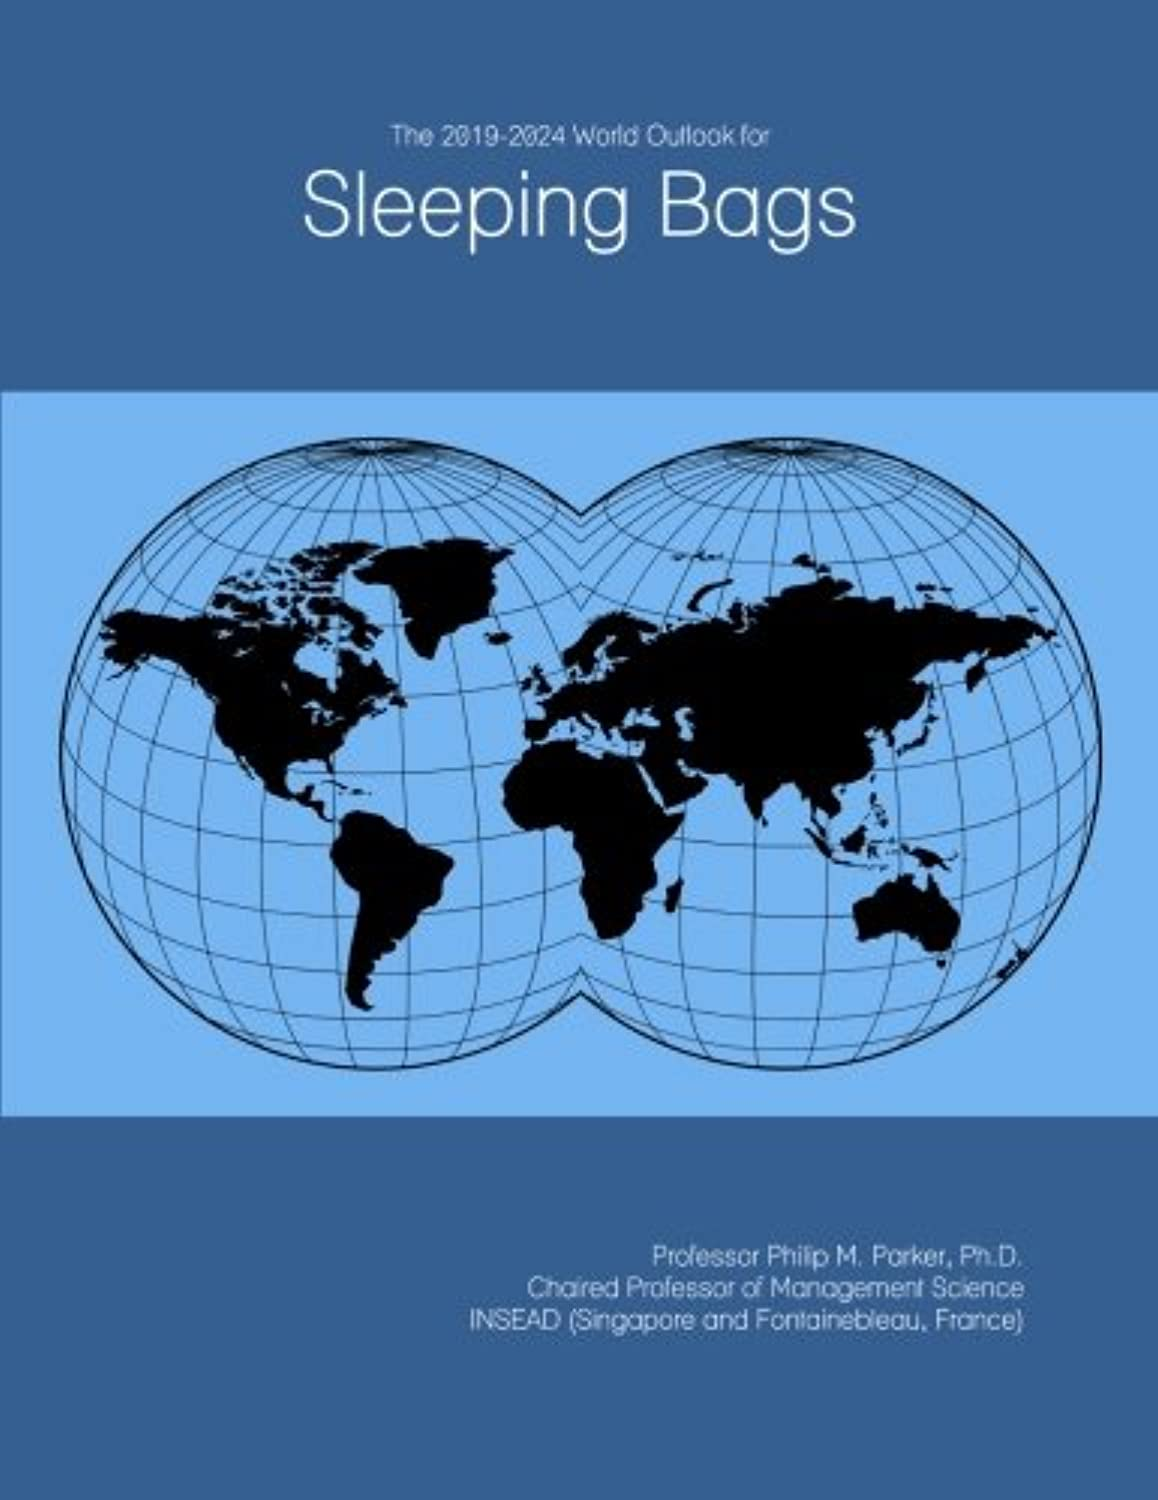 The 2019-2024 World Outlook for Sleeping Bags